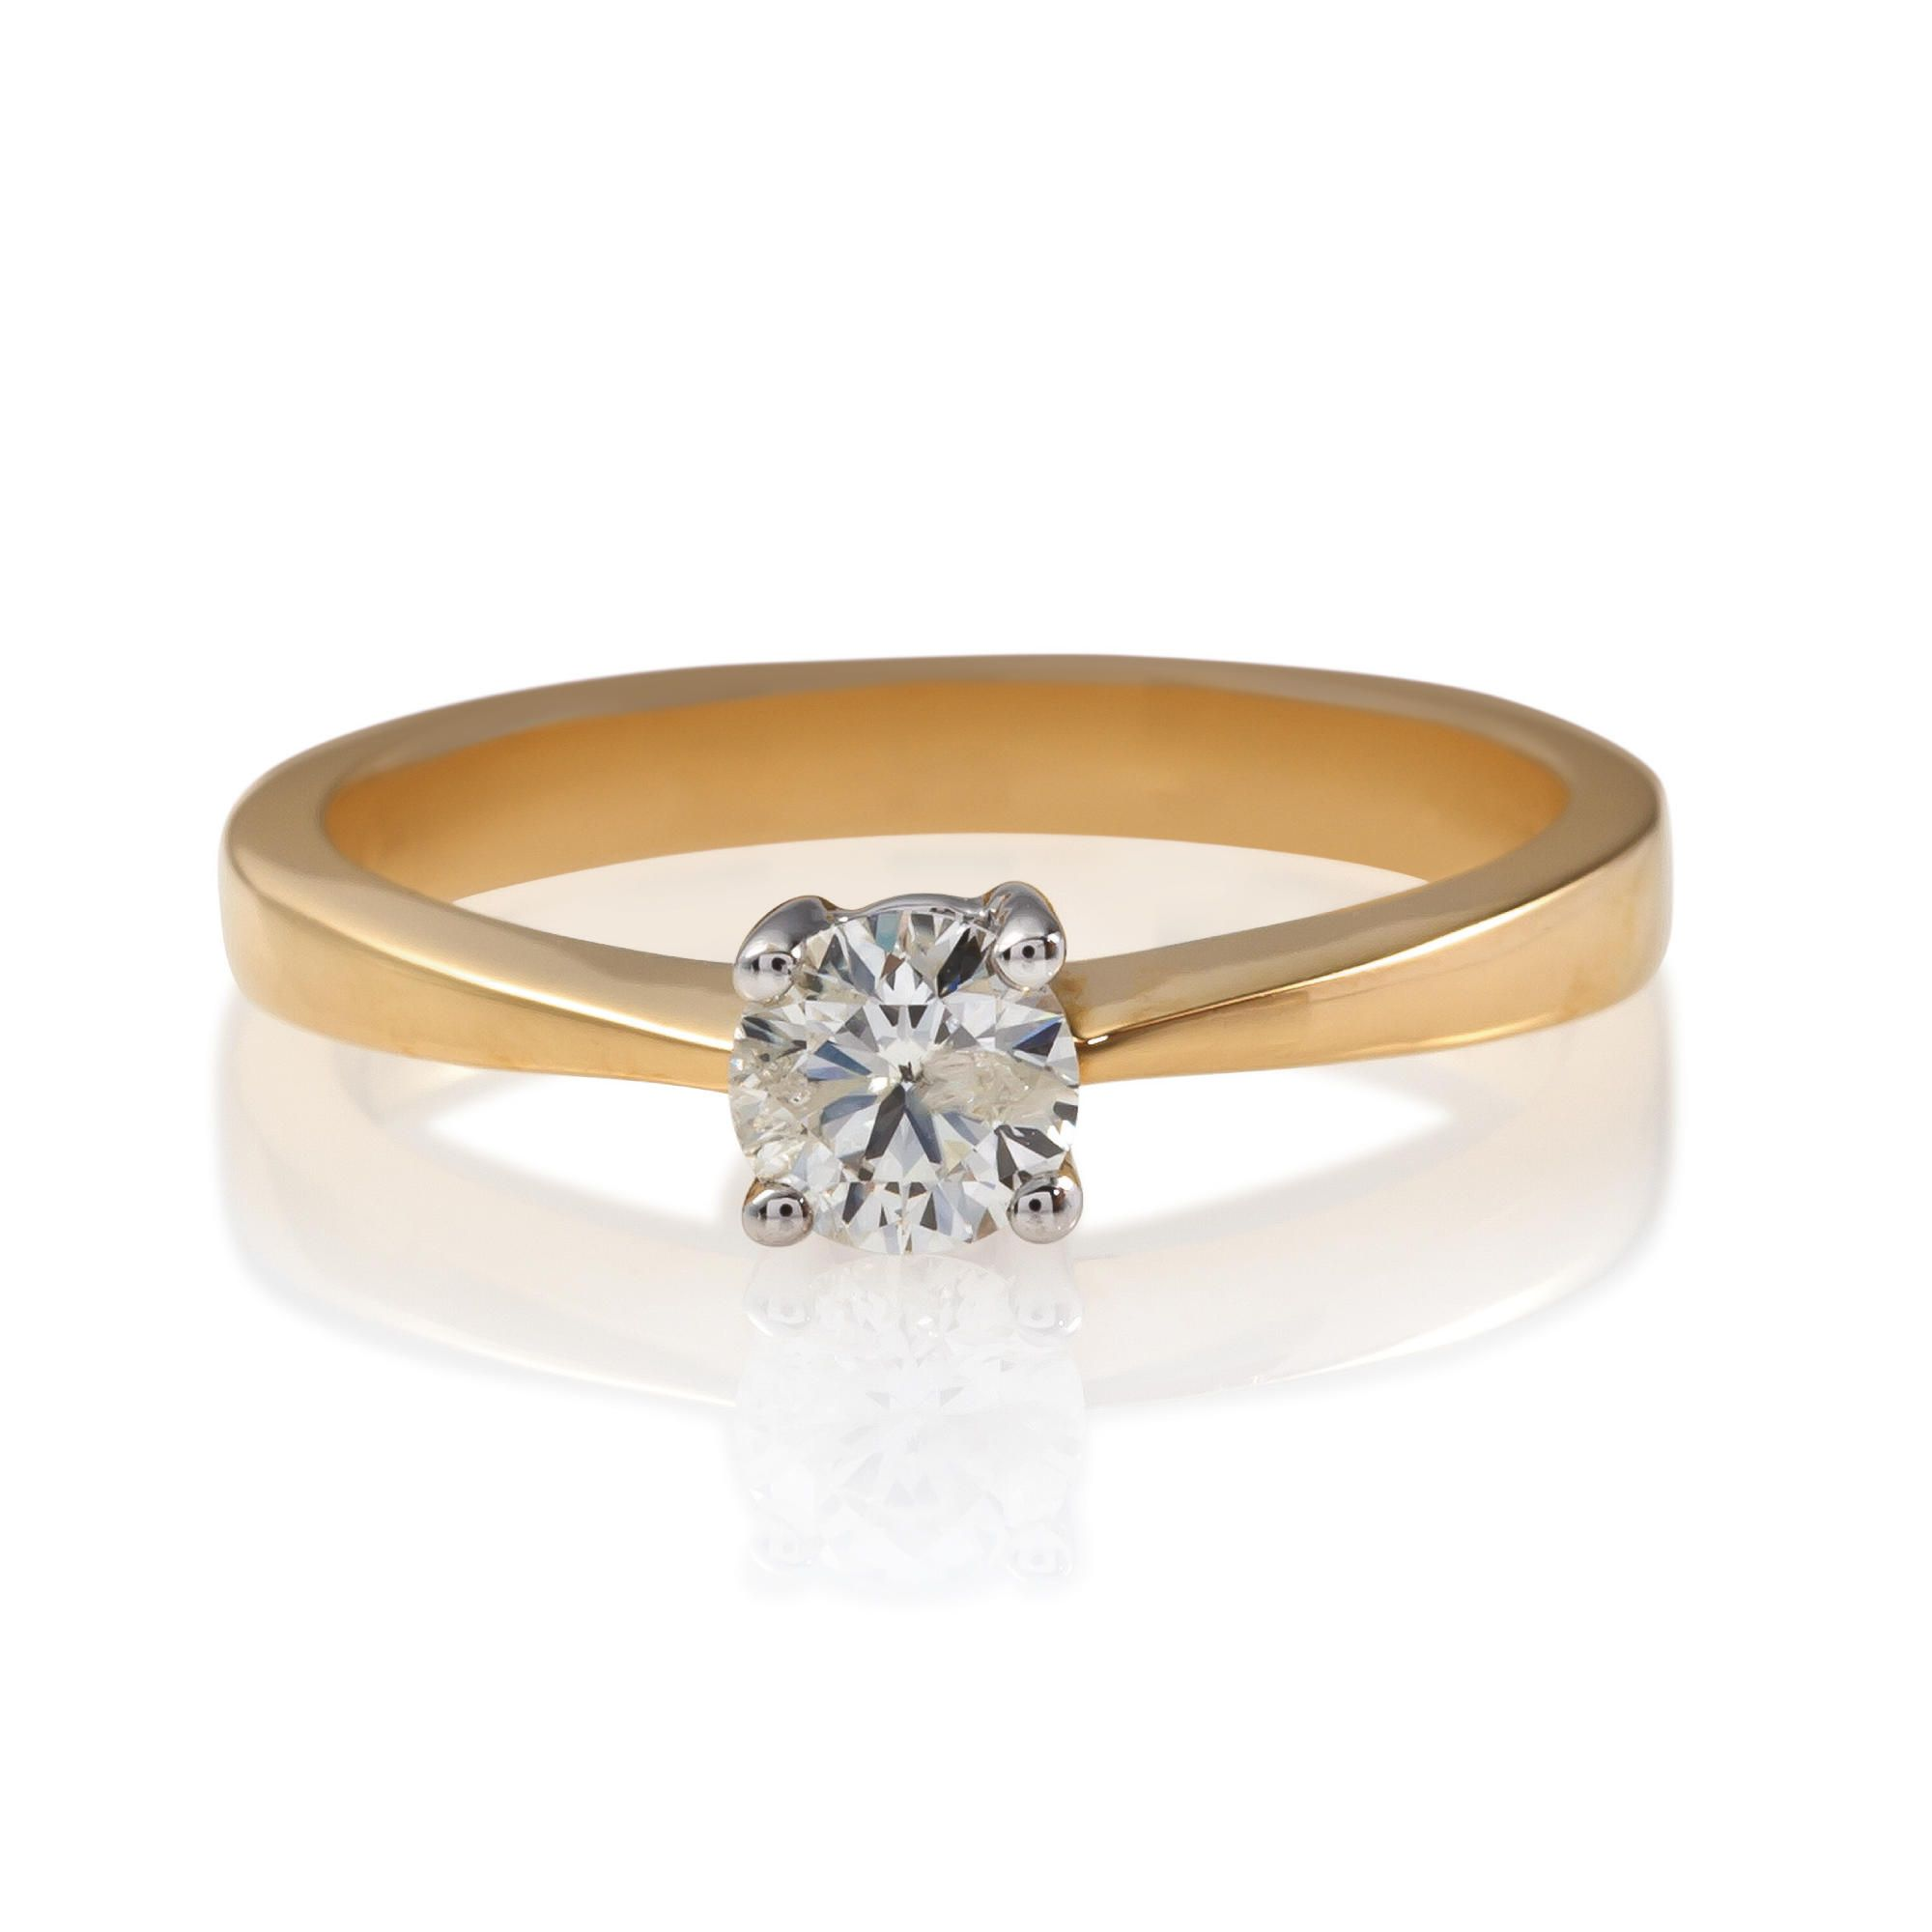 18ct Gold 50Pt Diamond Solitaire Ring, P at Tesco Direct